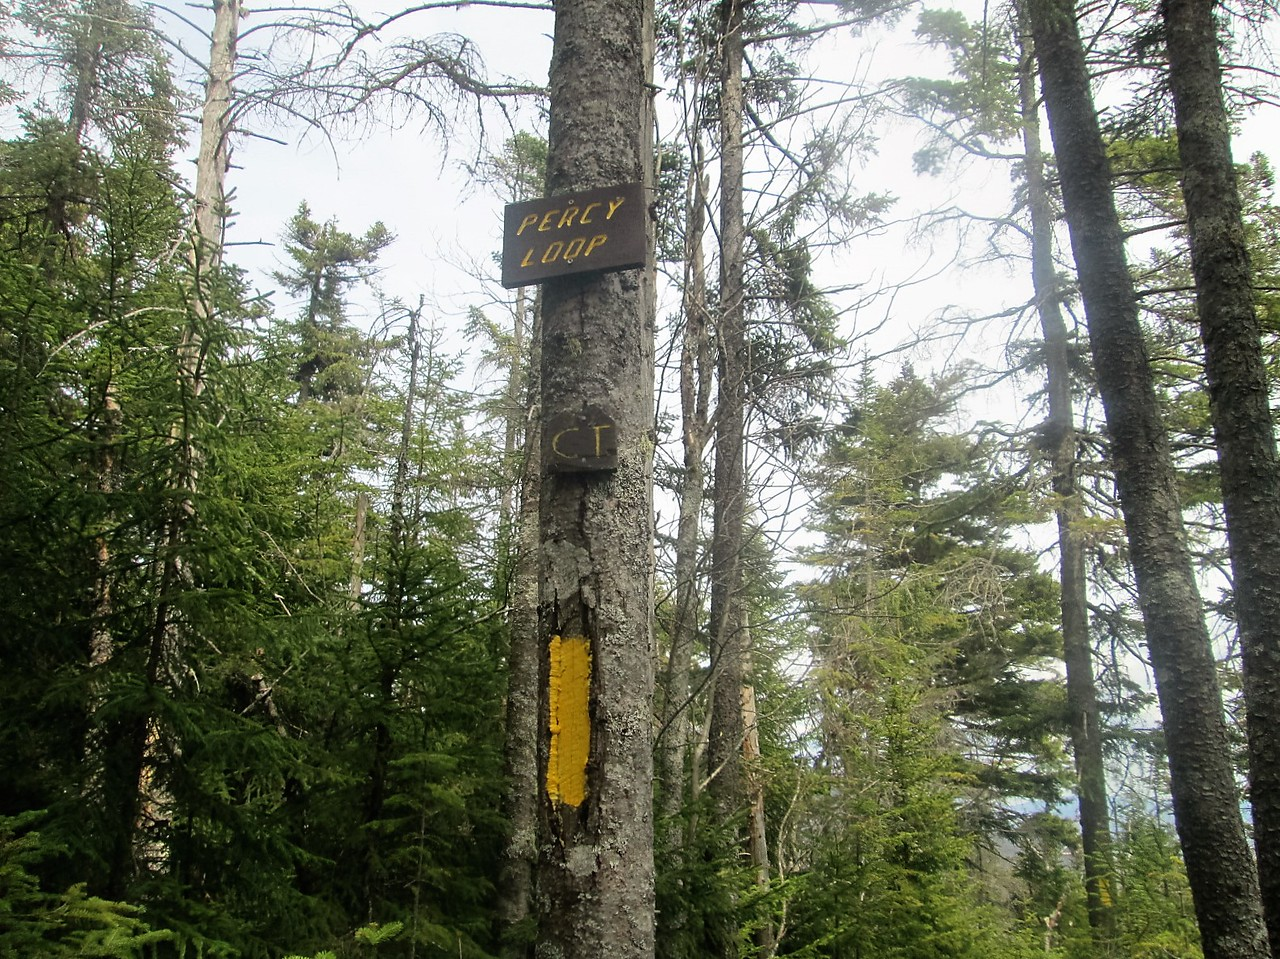 After a long ascent back up to the col, we finally reach the Percy Loop Trail